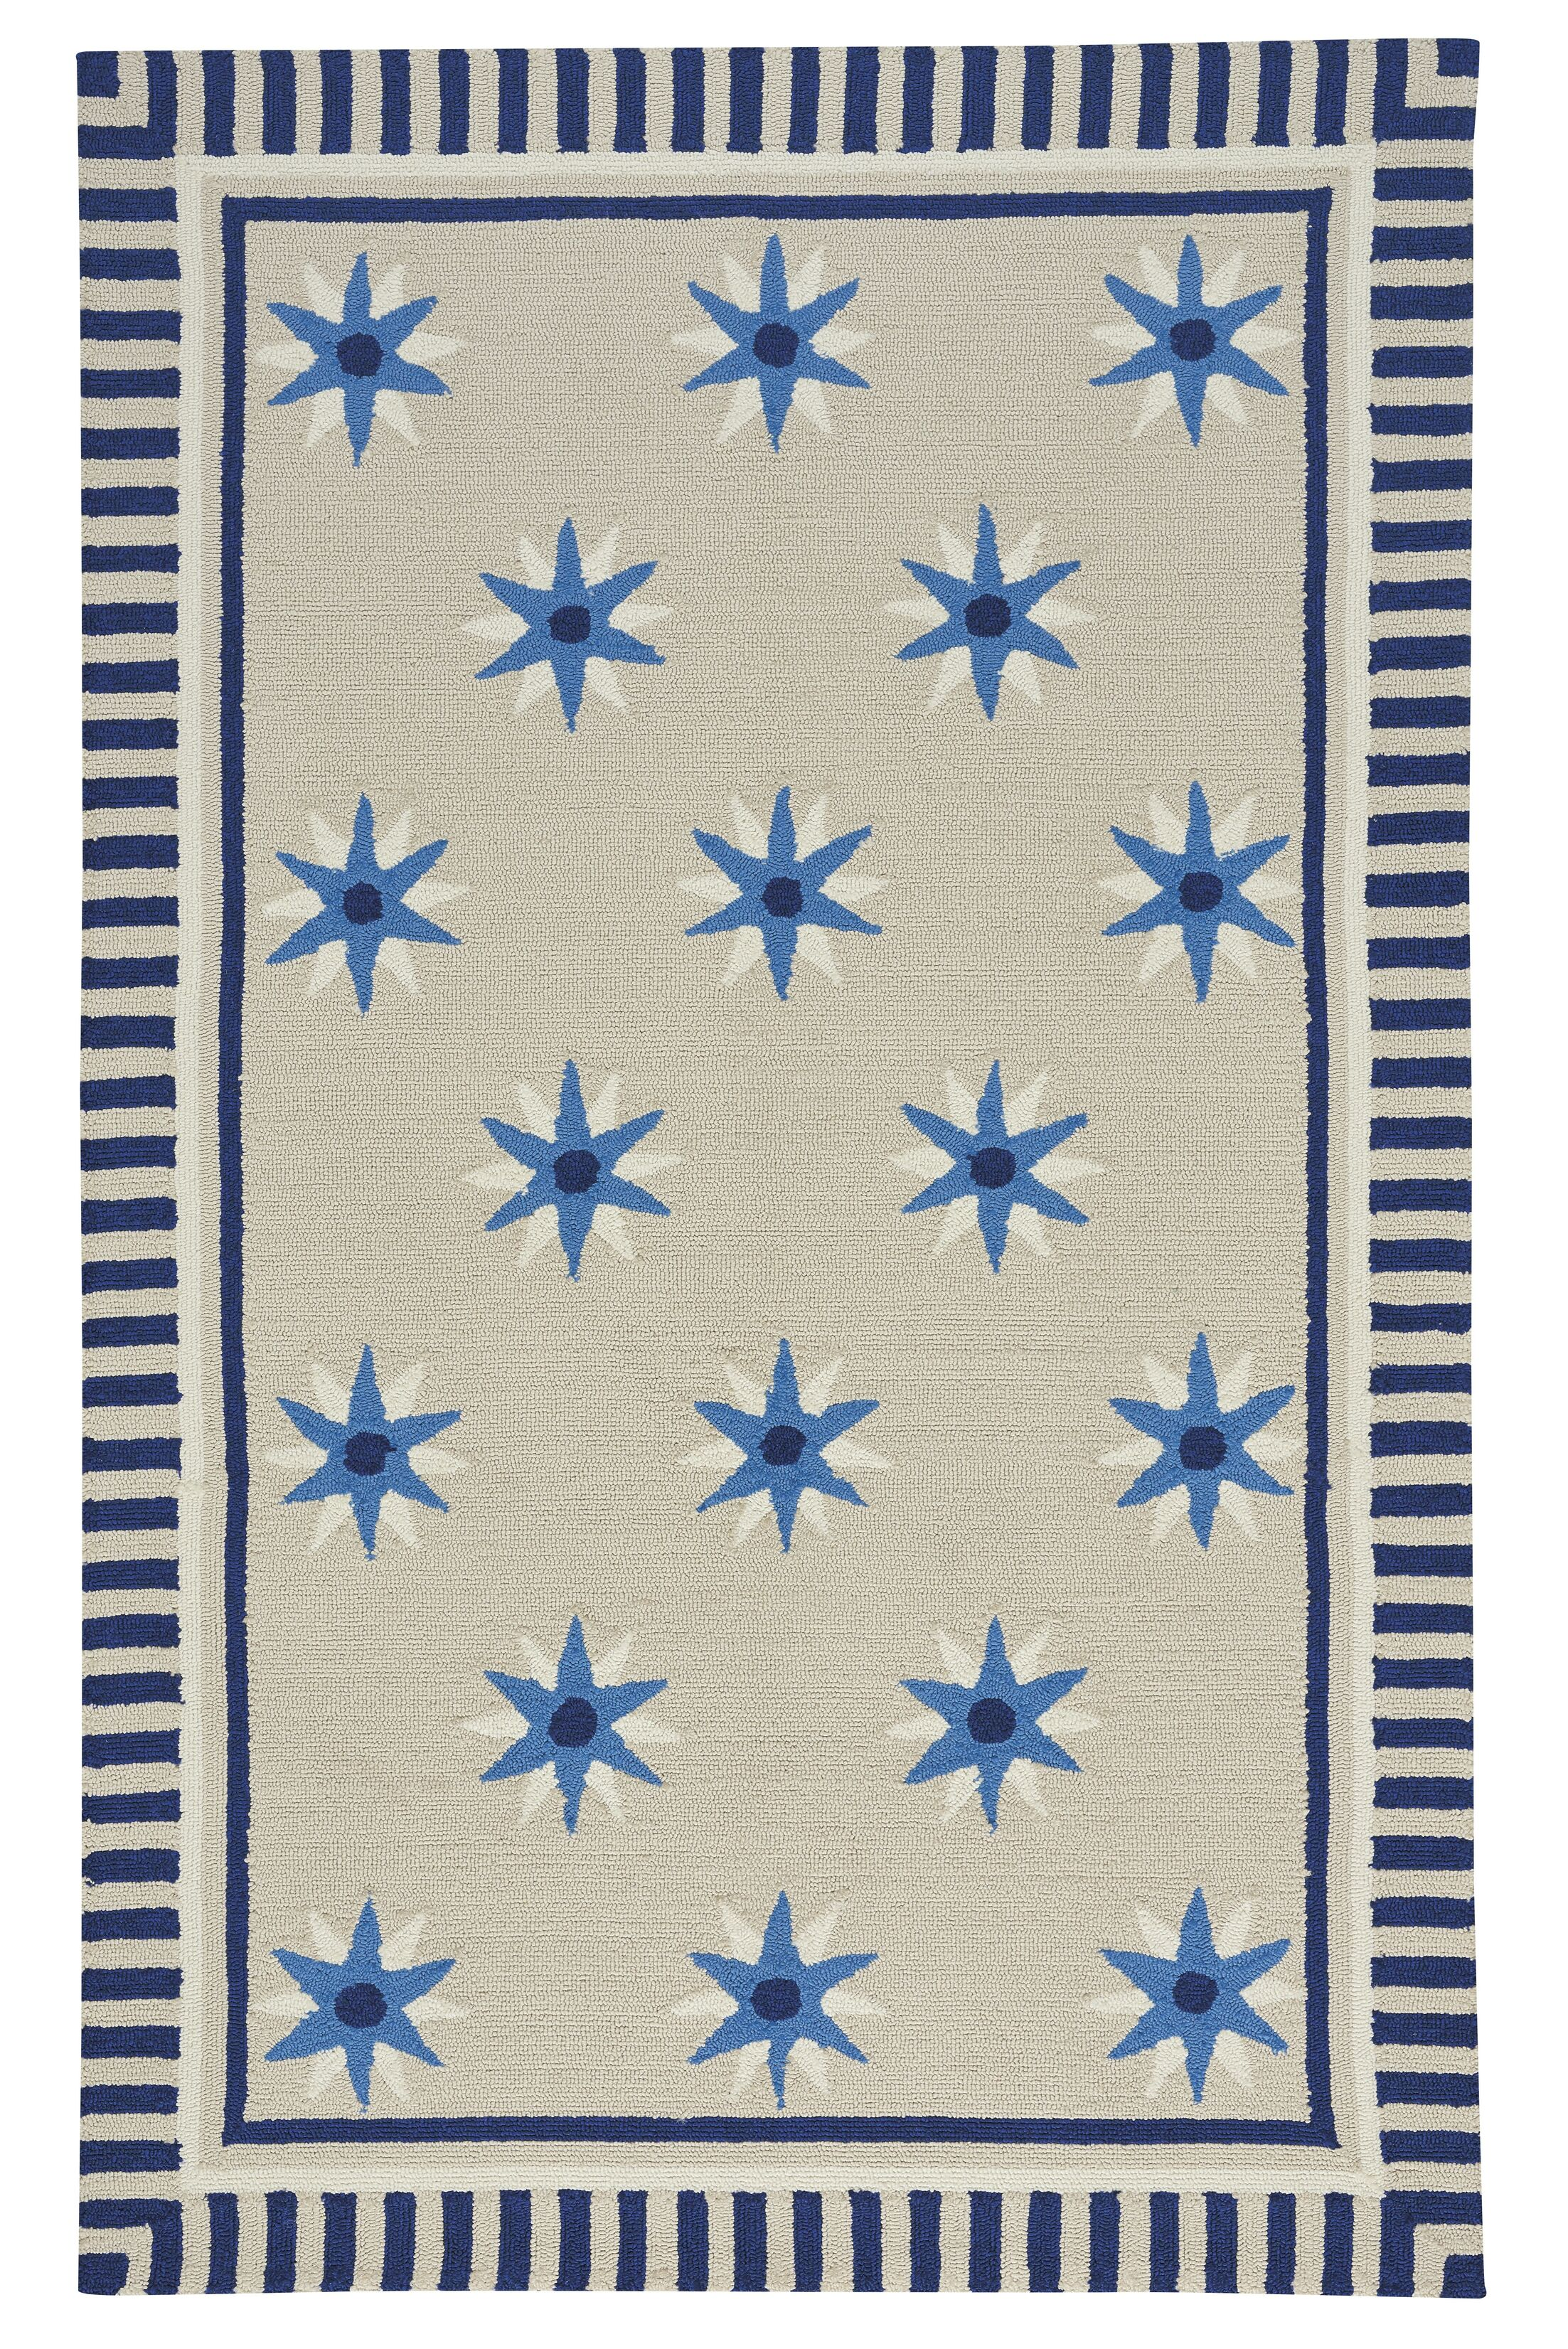 Wieland Tan/Blue Area Rug Rug Size: Rectangle 5' x 8'